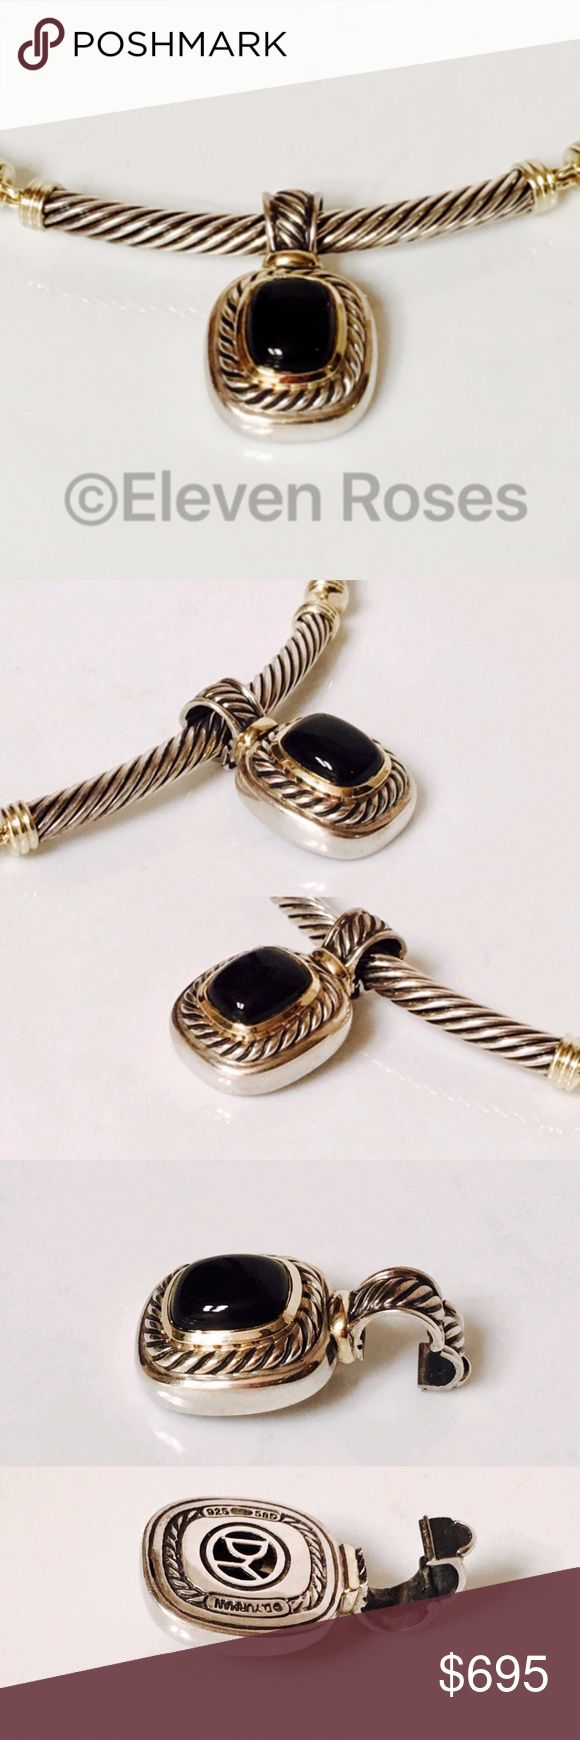 David Yurman Black Onyx Albion Pendant Enhancer David Yurman Large Black Onyx Albion Pendant / Enhancer  925 Sterling Silver & 14k Yellow Gold - Blue Topaz Gemstone - Large Hinged Bail  Preowned / Preloved 💕 May Show Slight Signs Of Having Been Worn 📷 Listing Images Are Of Actual Item Being Offered Cable Choker Necklace Sold Separately 999 Jewelry Necklaces